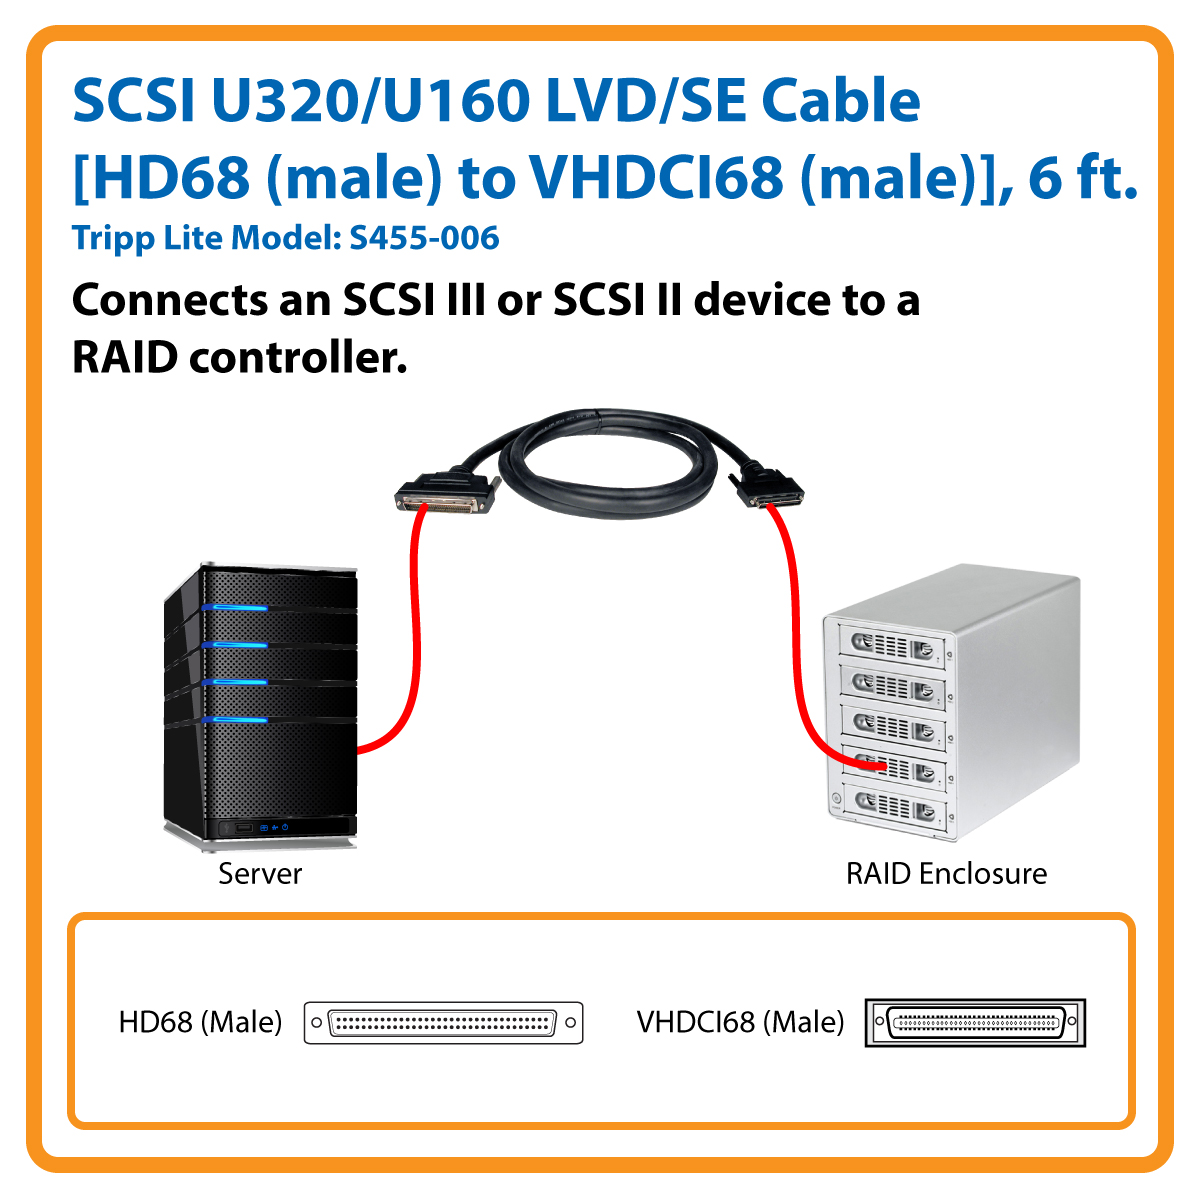 Scsi Cable Wiring Diagram Electrical Diagrams Coaxial Tripp Lite 6ft Ultra2 160 U320 Lvd Vhdci Male Hd68